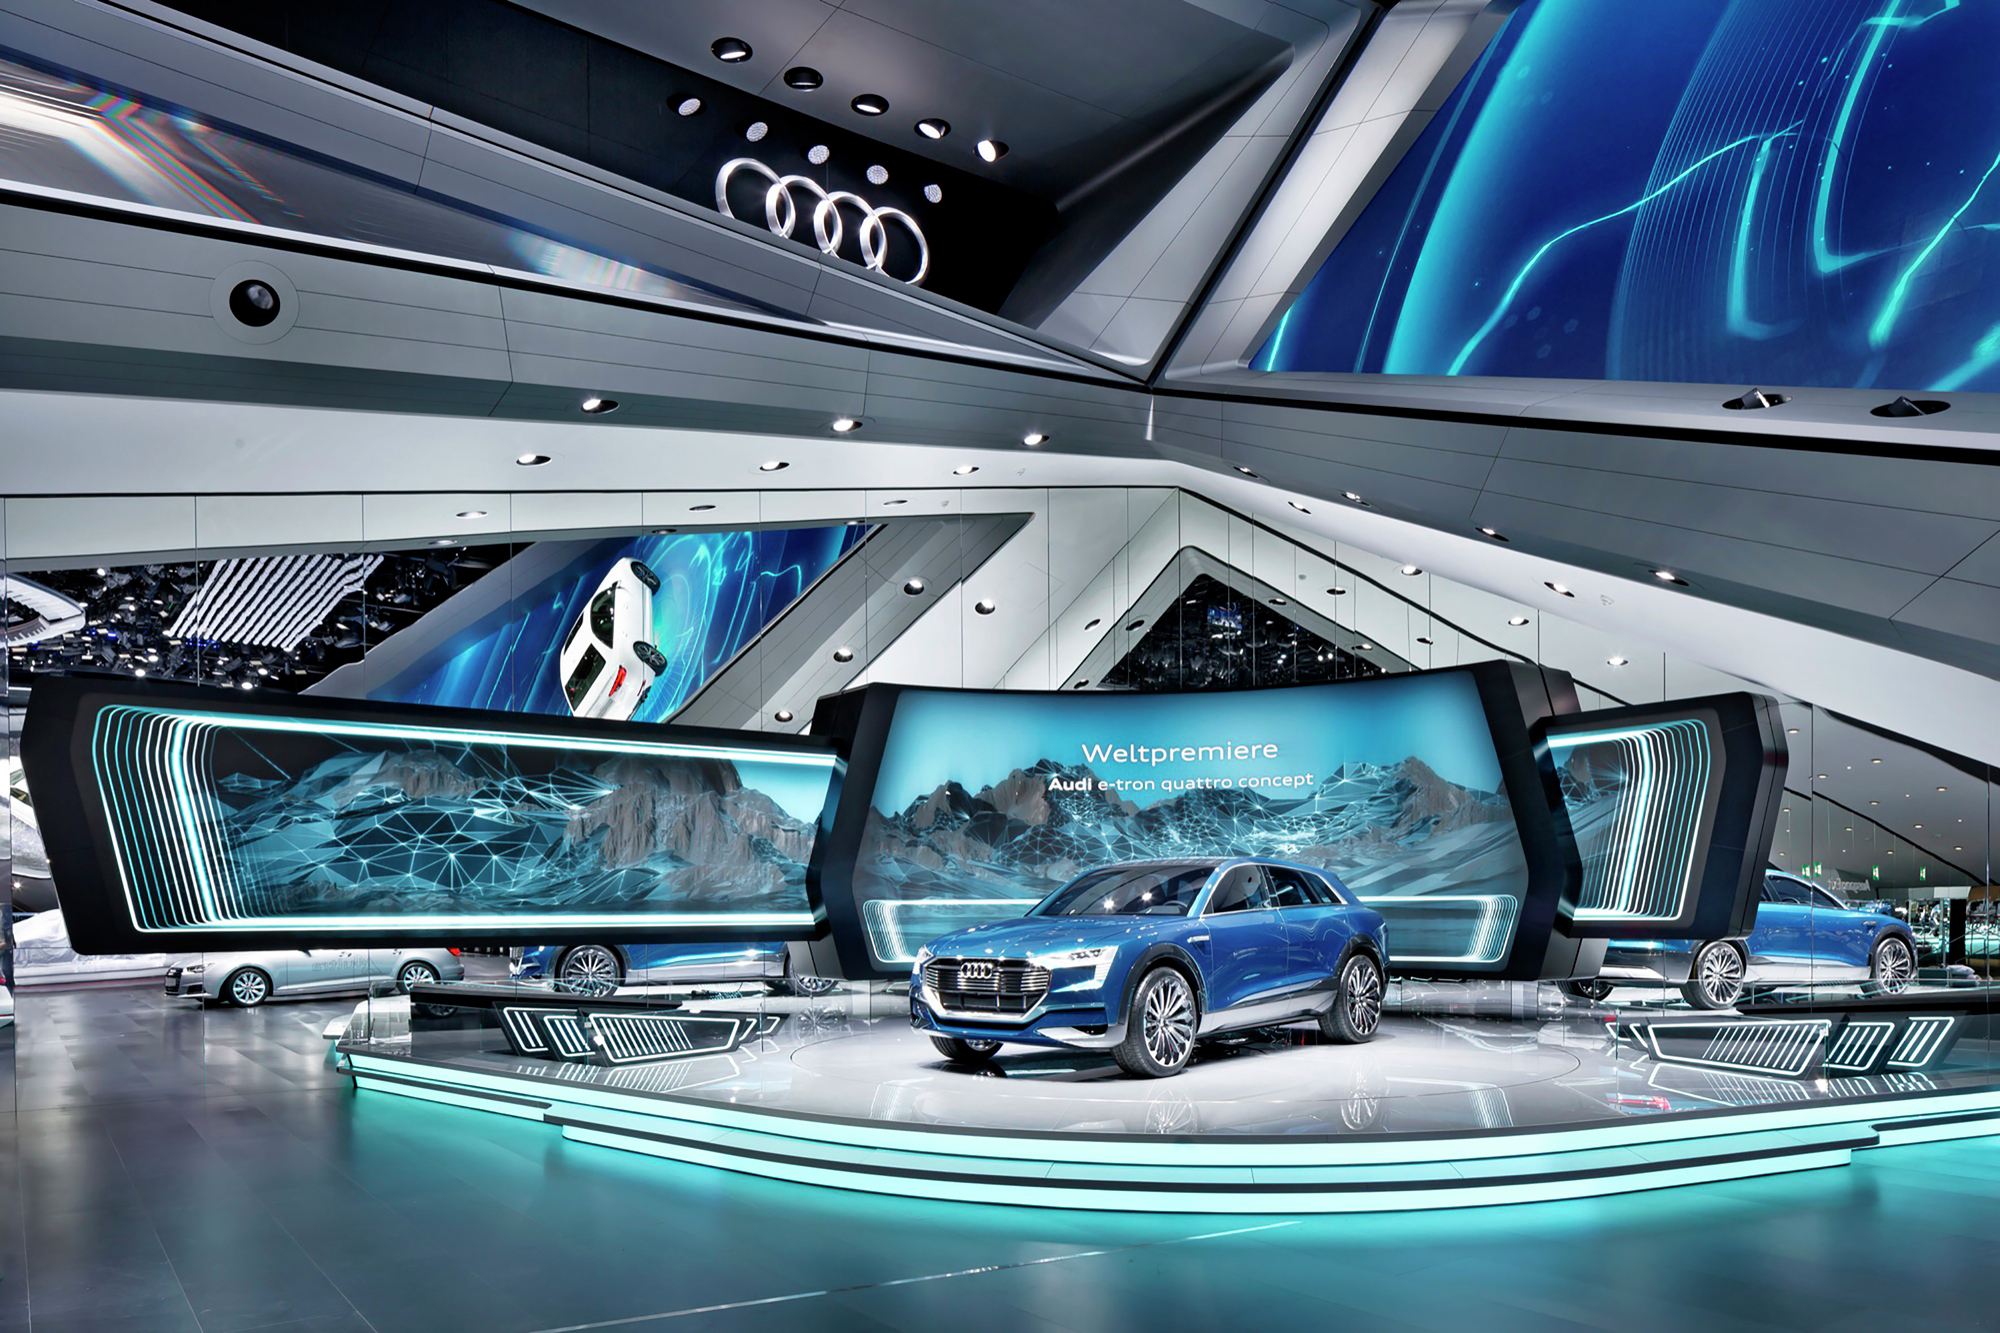 Audi Motor Show SCHMIDHUBER ArchDaily - Exhibition car